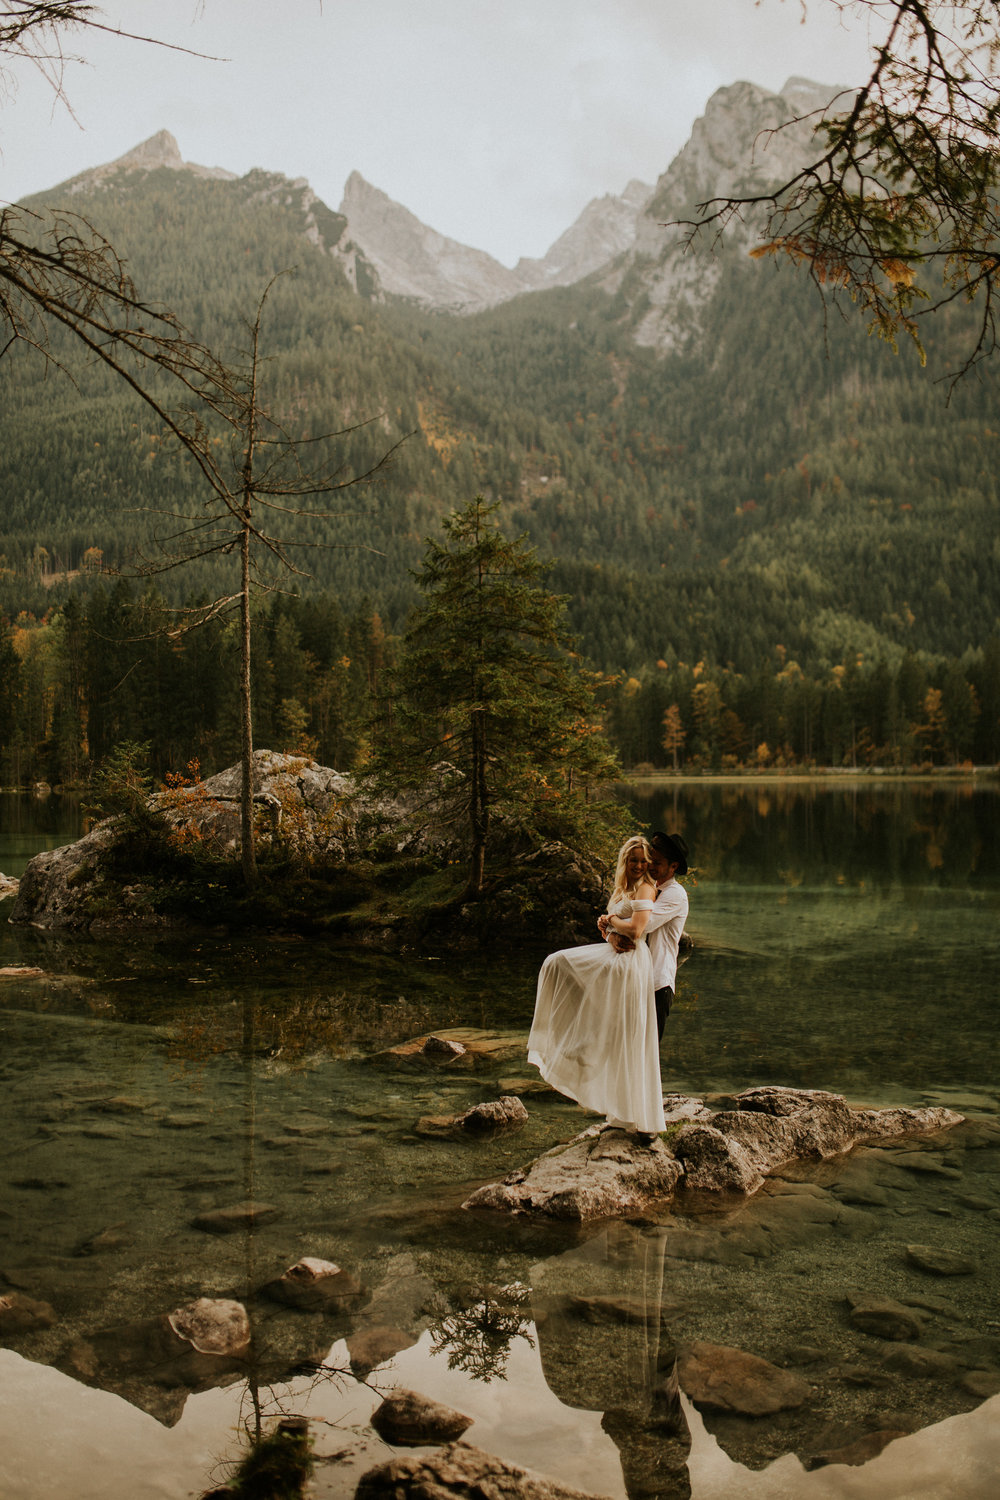 Hannah and Hannes engagement photos on a lake in Hintersee, Germany